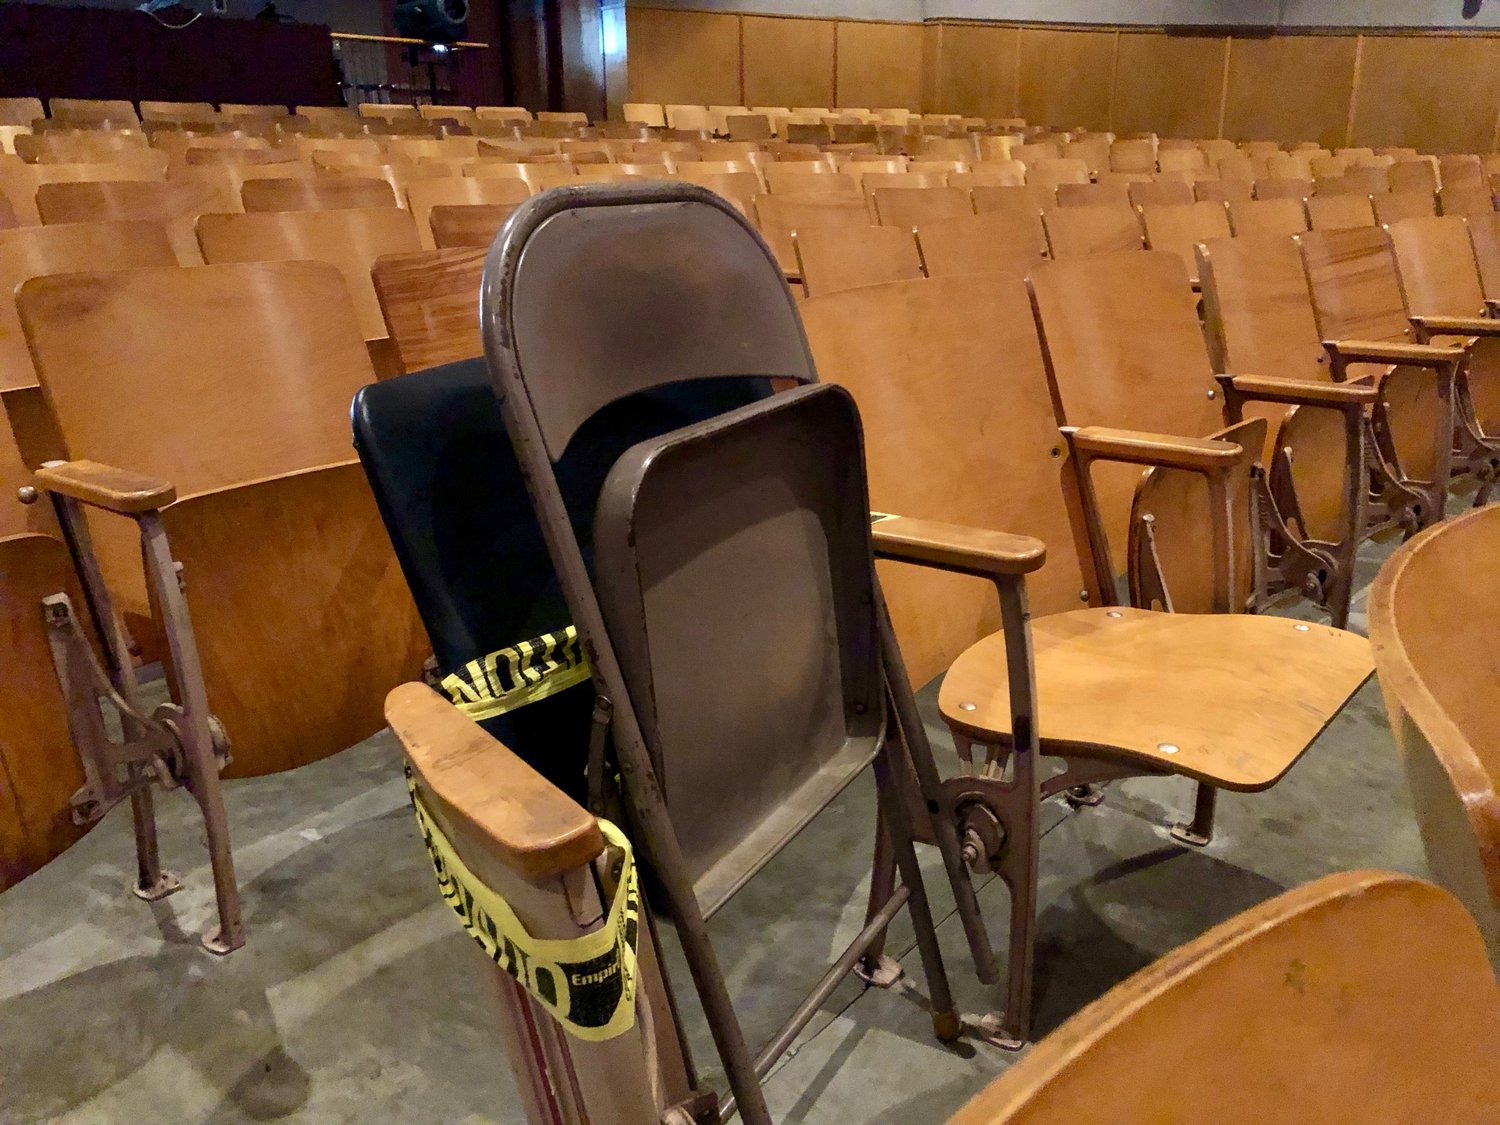 A metal folding chair blocks one of the original wooden chairs in the Portsmouth High School auditorium, indicating it's not safe to sit in. All of the chairs will be replaced starting next week.